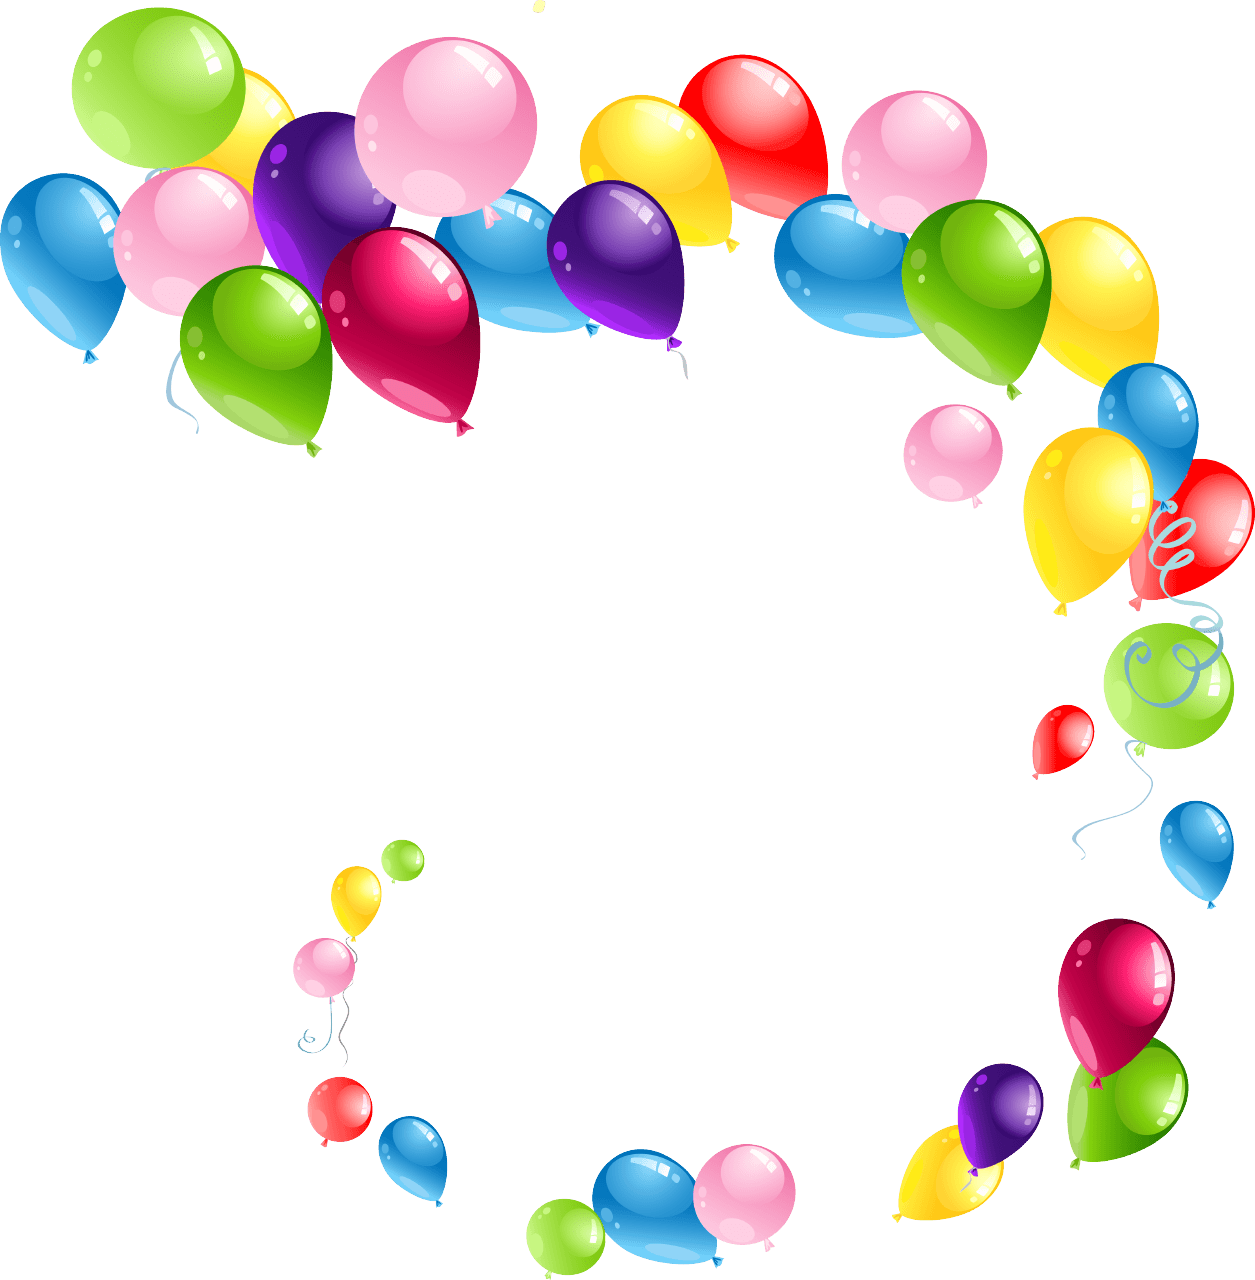 Flying spiral balloons stickpng. Balloon png transparent background vector